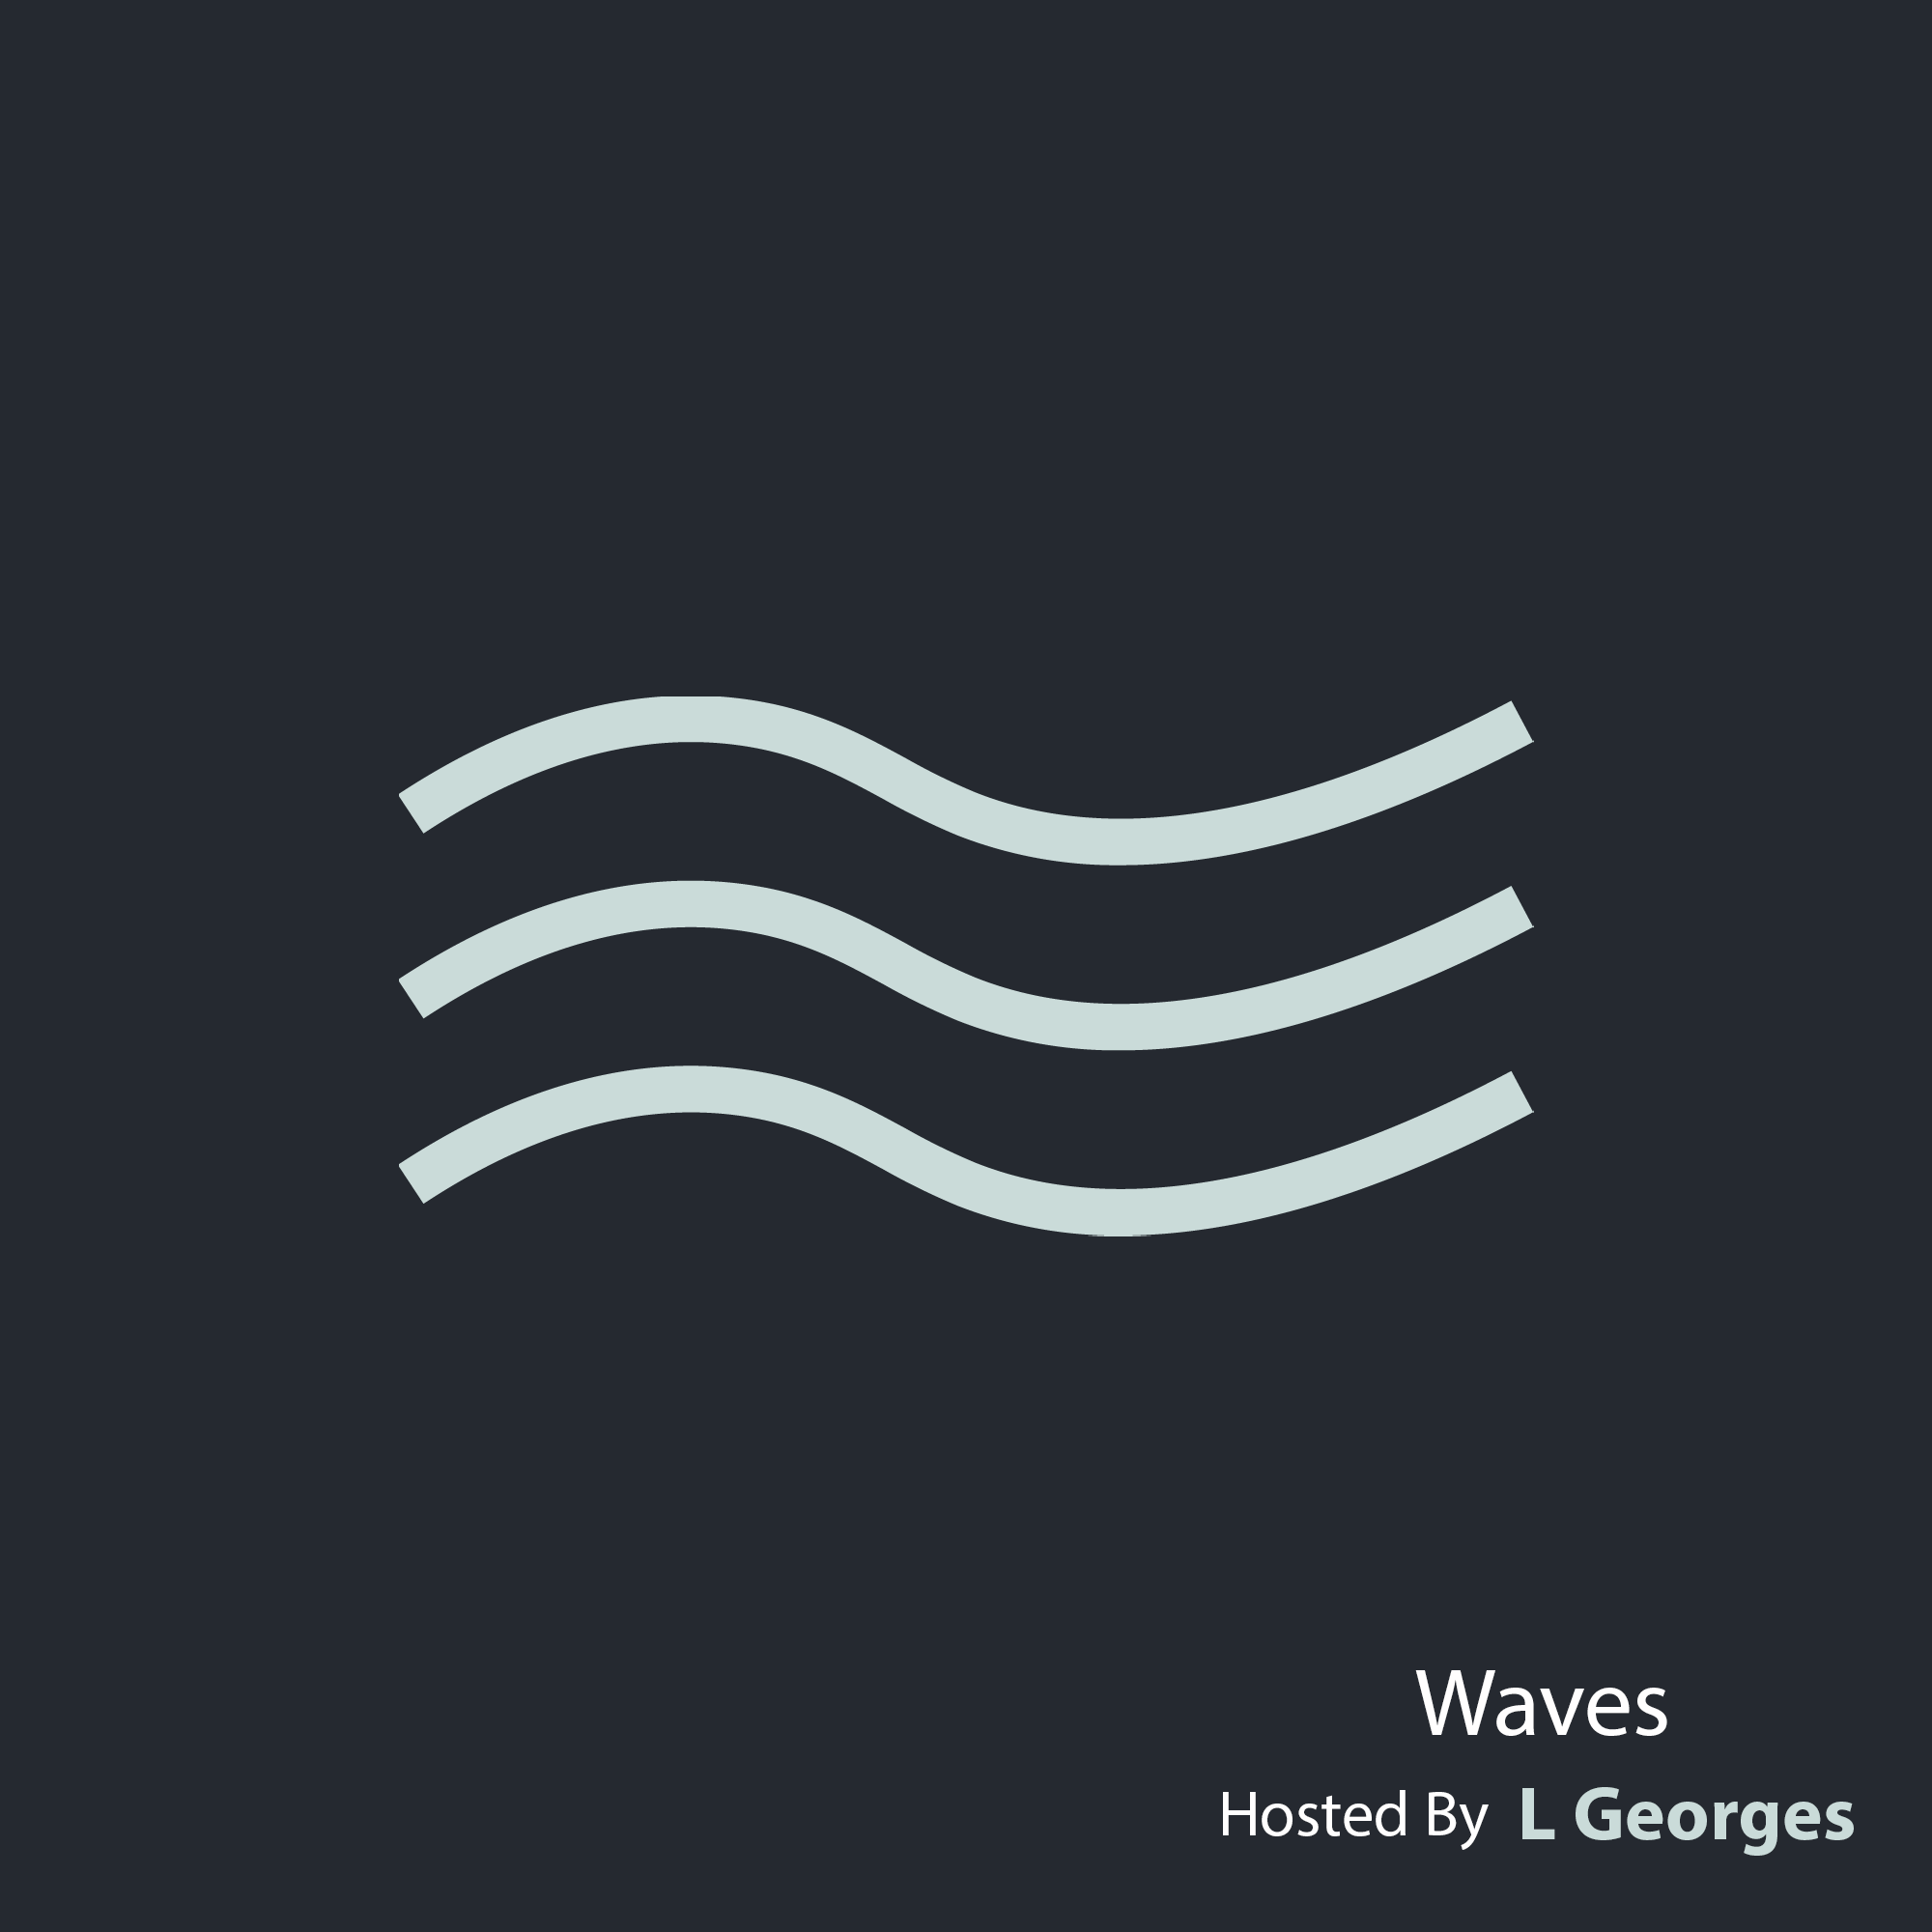 L Georges - Waves - Act 002 (from October 23rd)